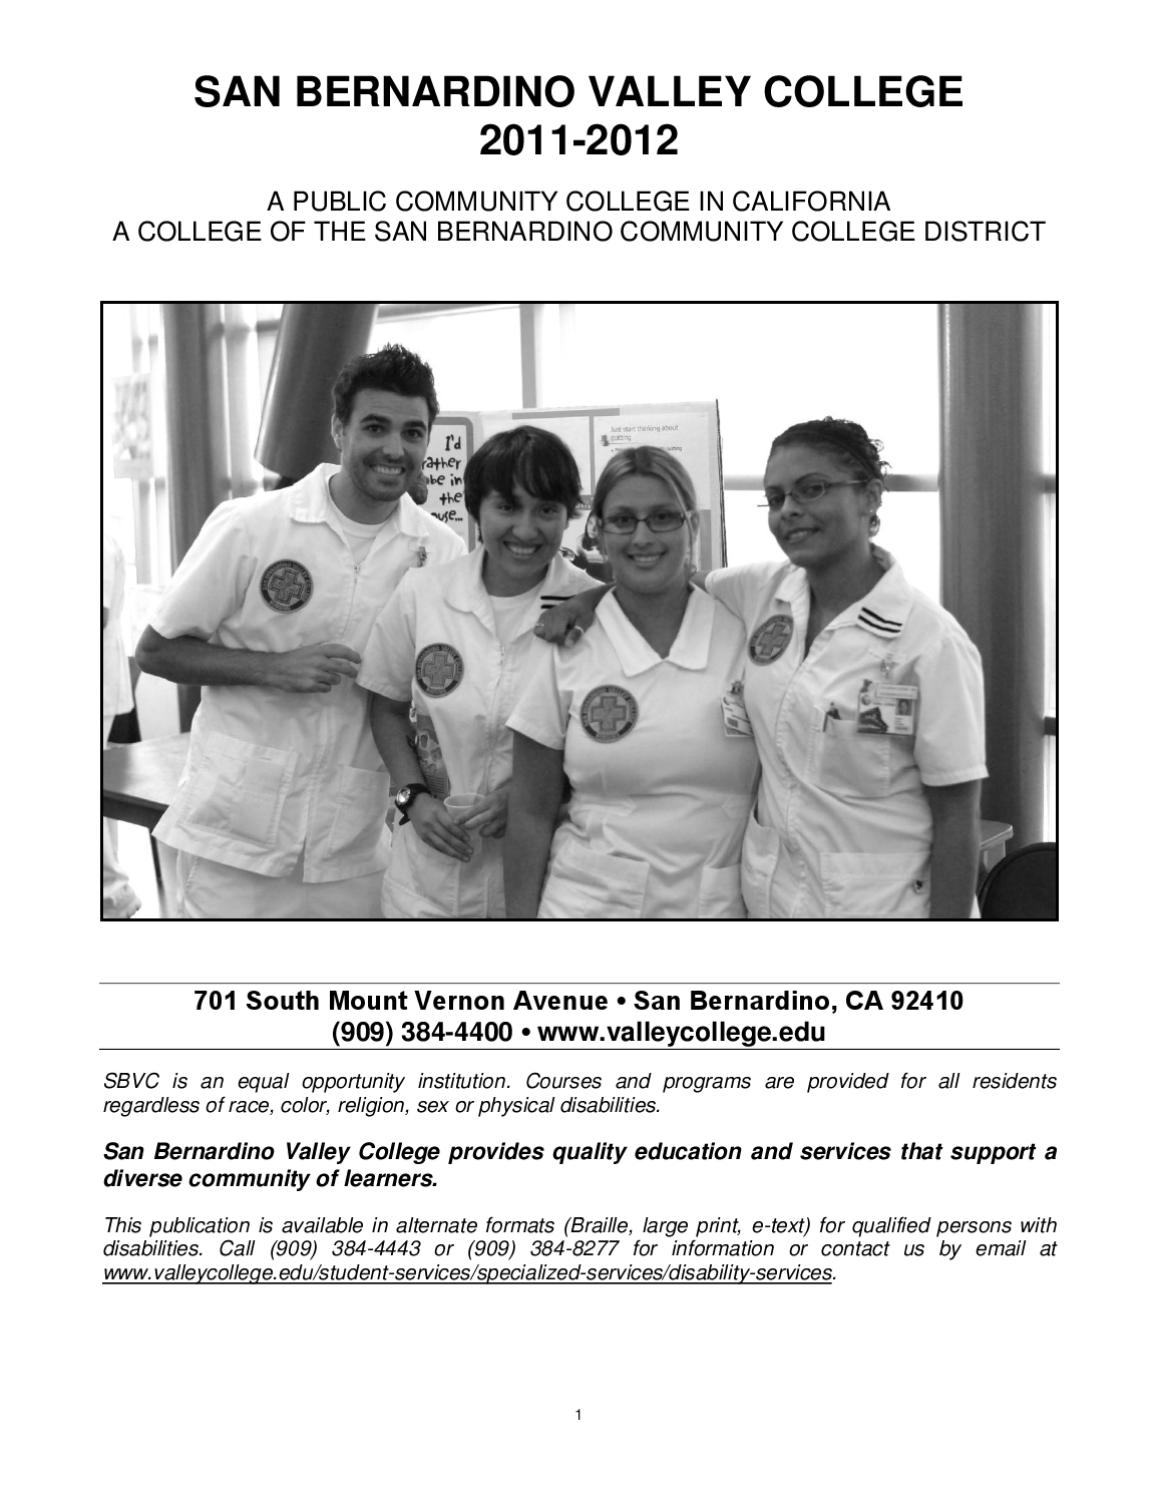 Sbvc 2011 2012 academic catalog by san bernardino valley college sbvc 2011 2012 academic catalog by san bernardino valley college issuu xflitez Gallery